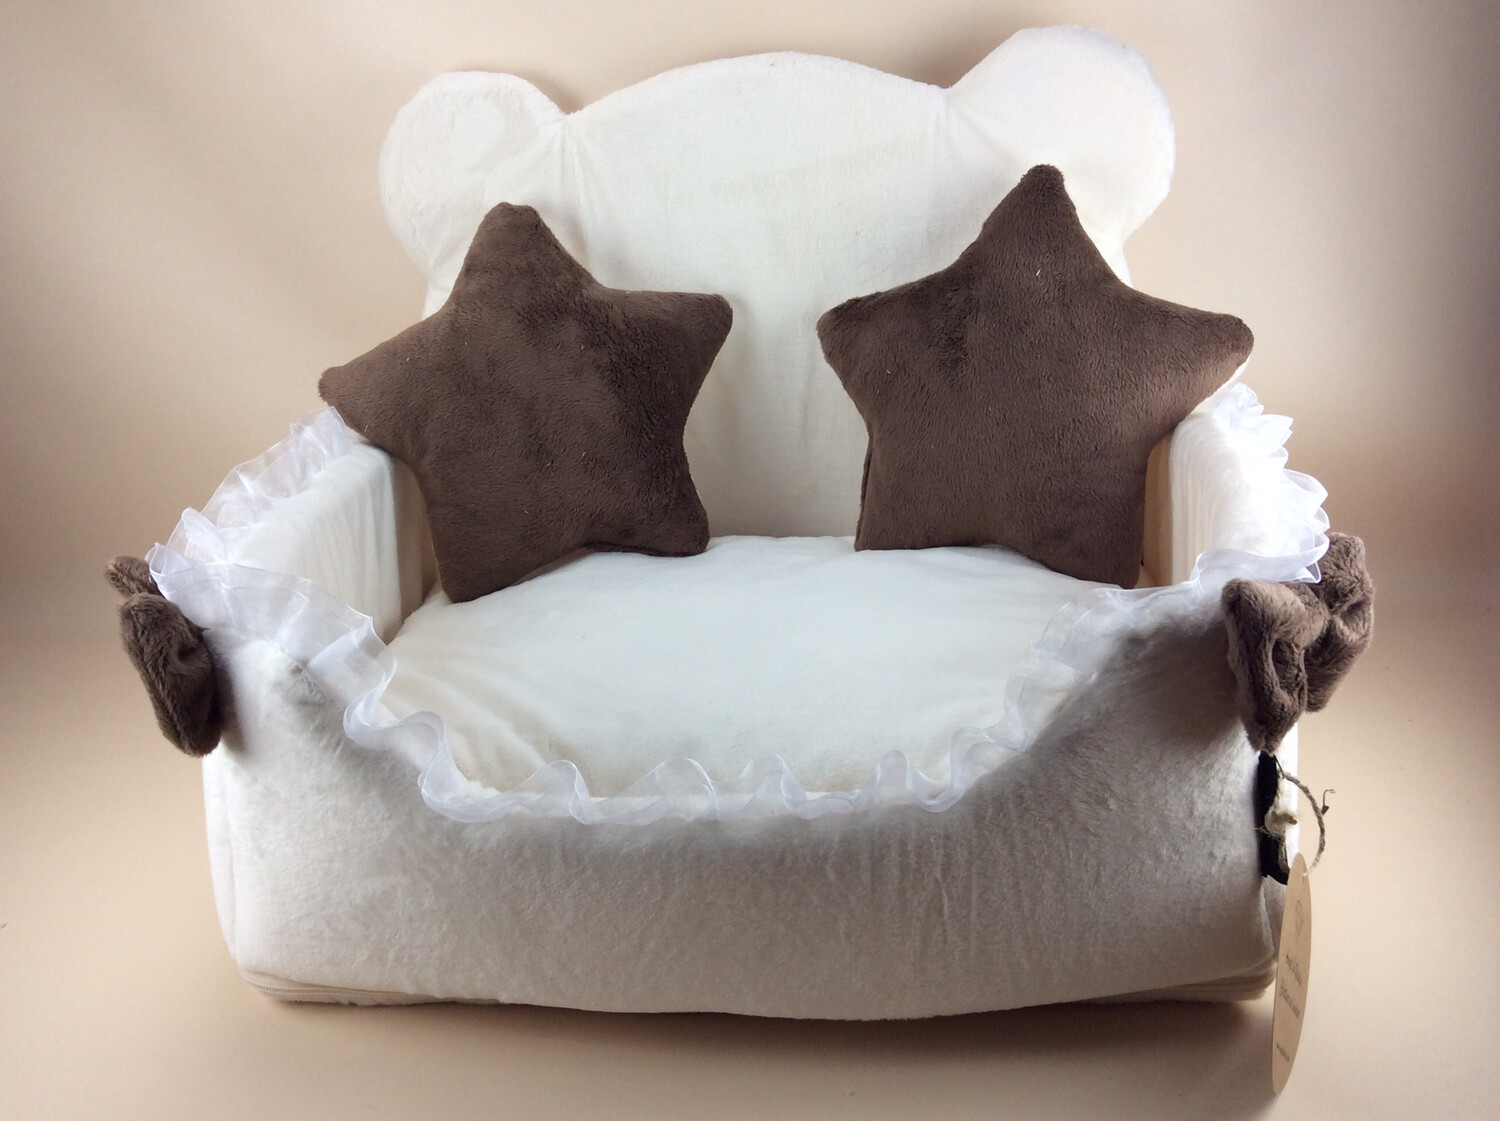 Cute Teddy bed creme/choco